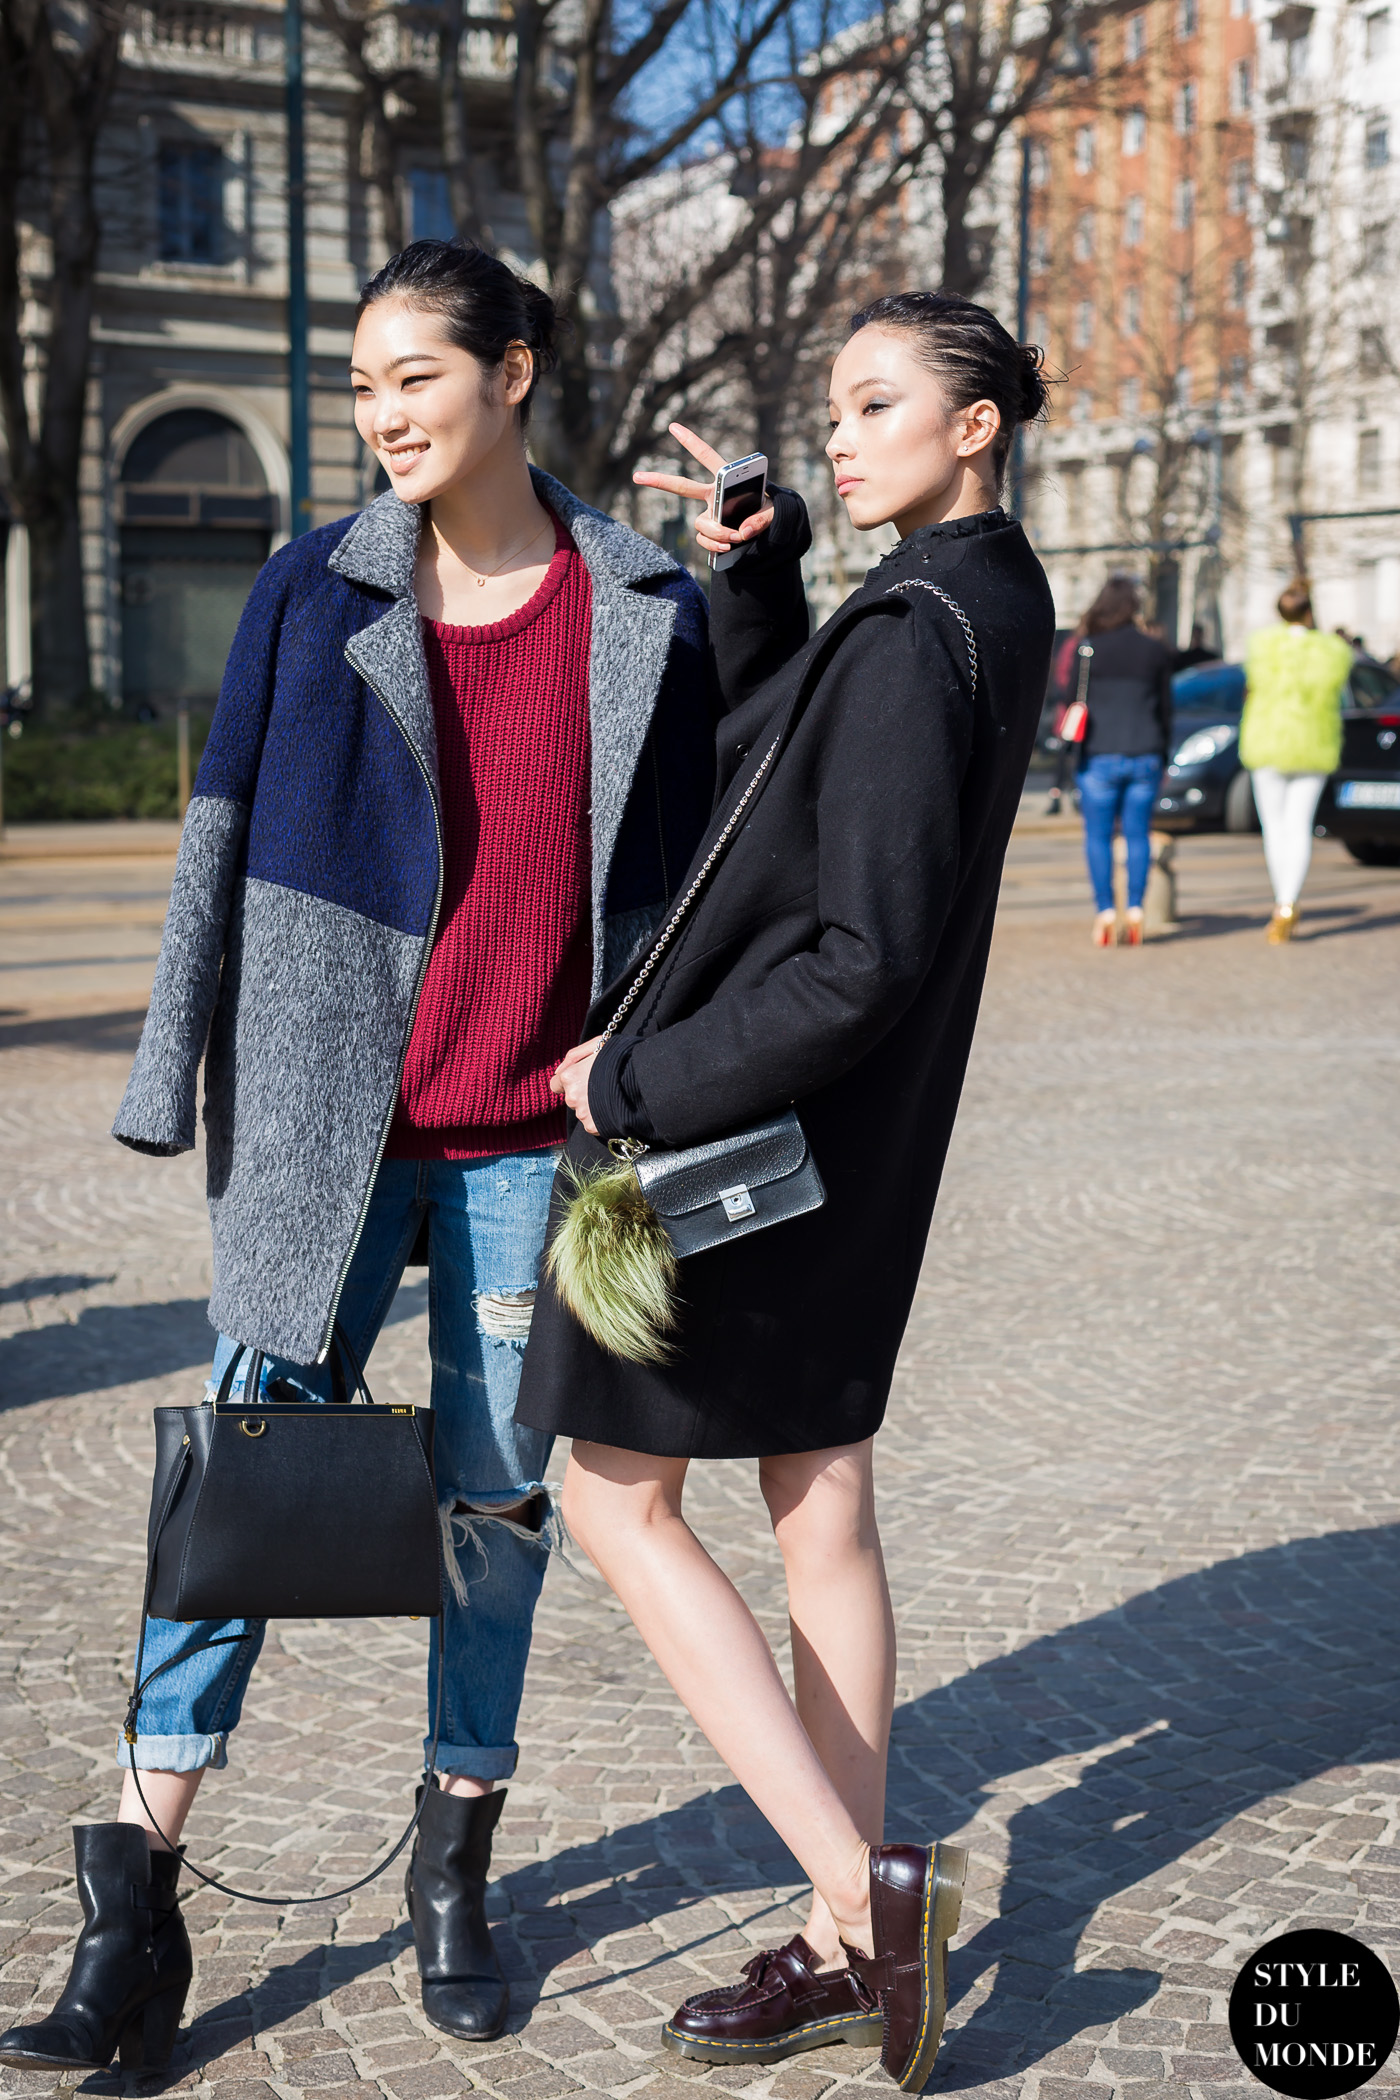 Xiao Wen Ju and Chiharu Okunugi Street Style Street Fashion Streetsnaps by STYLEDUMONDE Street Style Fashion Blog